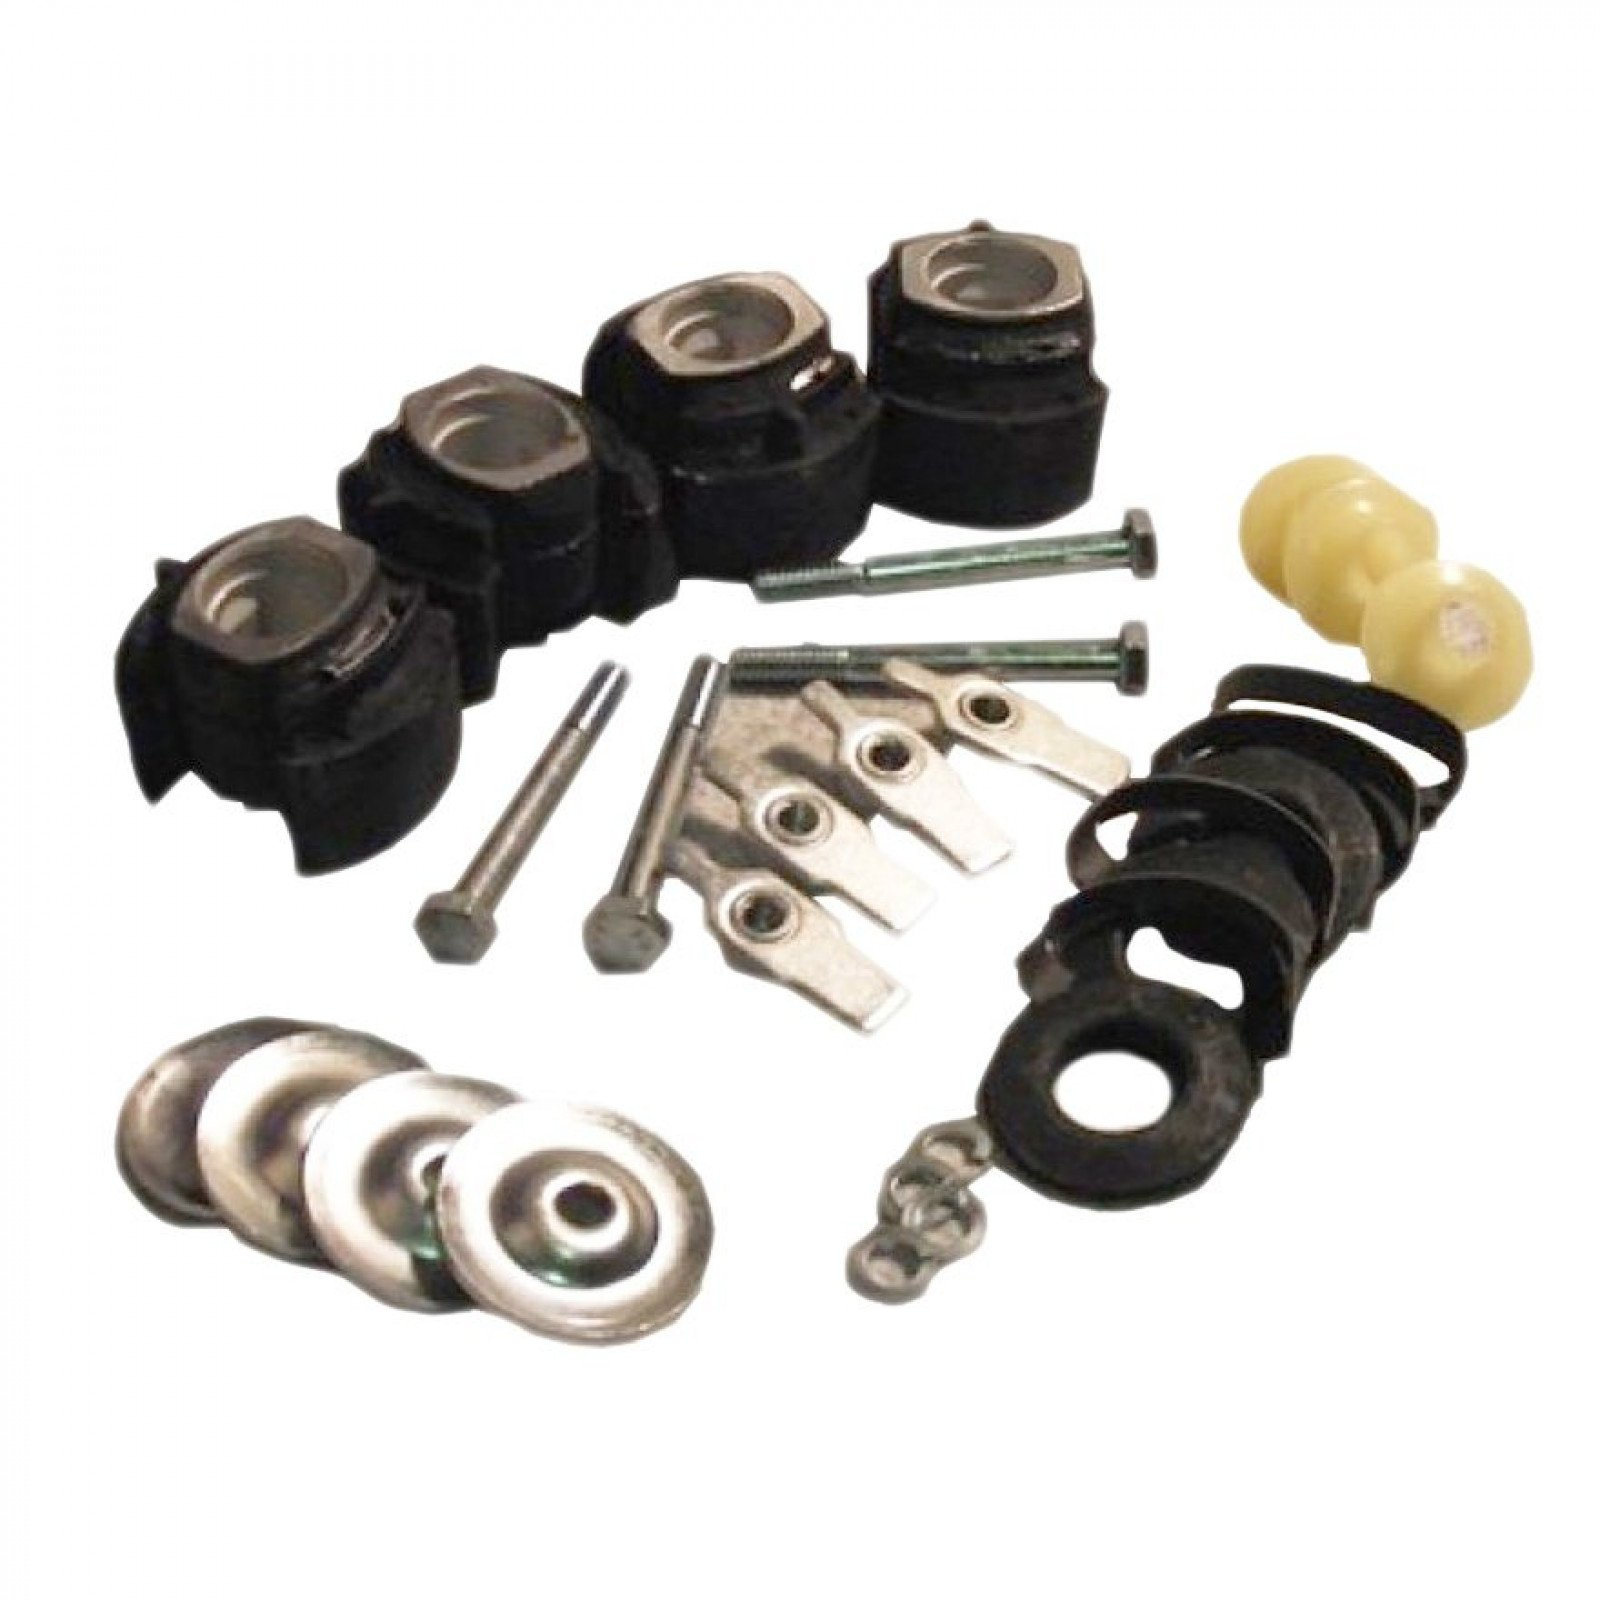 Mercedes Benz Sl Slc 107 O S Under Dash Panel Right Hand Drive in addition Mercedes Benz Sl 107 Front Subframe Bushes Kit 1153301875 further Marche Arriere Les 30 Ans De La Mercedes W124 114382p2 furthermore 261715 Mercedes W124 230 Ce Tuning furthermore 59617 Part Number Help Bracket Hold Foglight Place. on mercedes benz w124 sportline